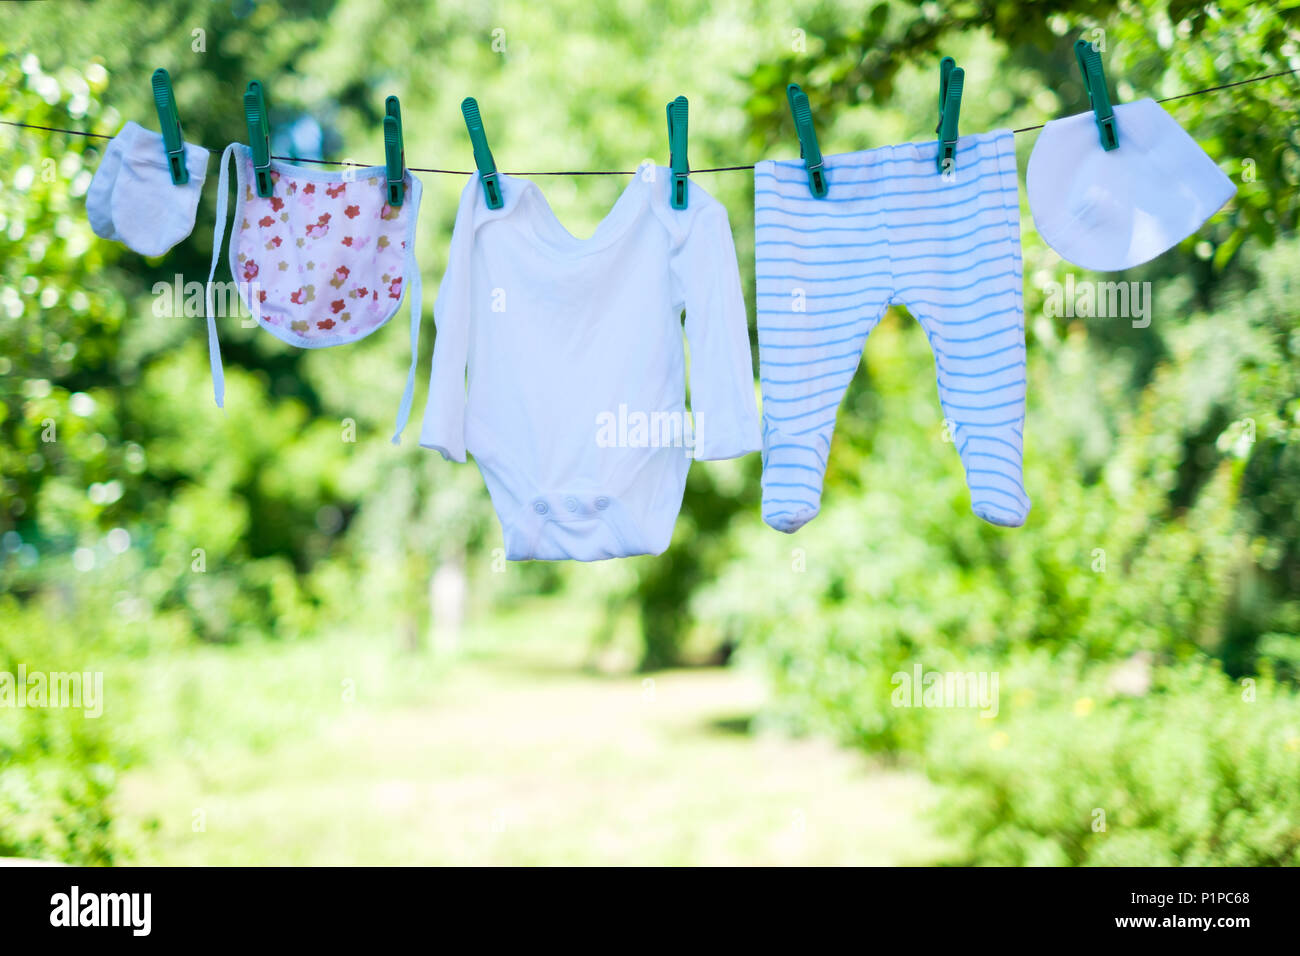 Baby clothes on clothesline in garden - Stock Image